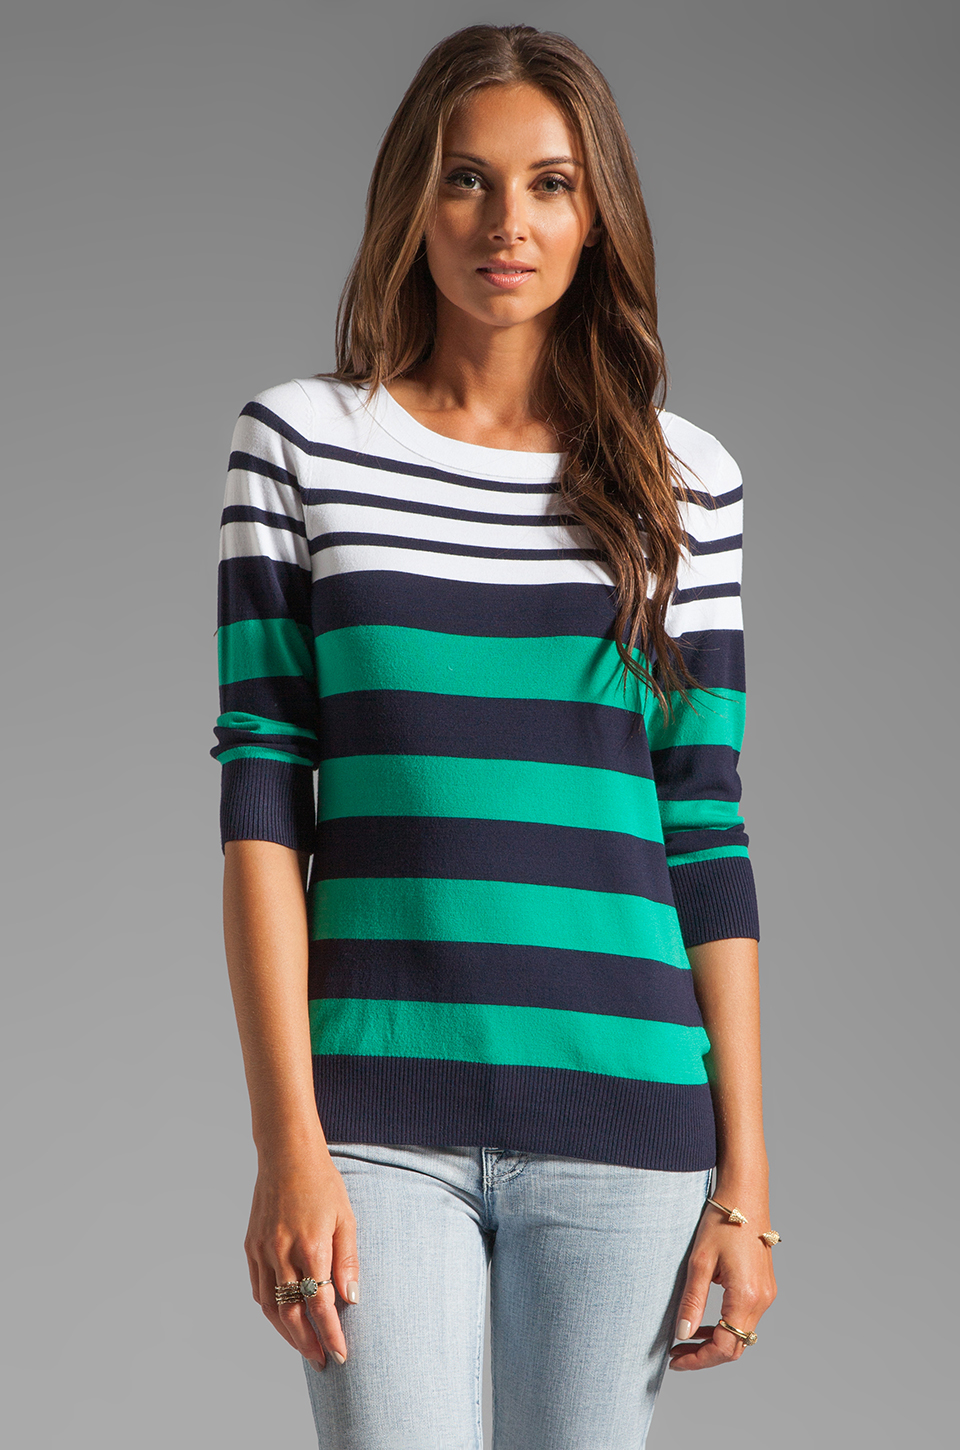 Shoshanna Striped Caroline Marioniere Sweater in Ivory/Jade/Navy